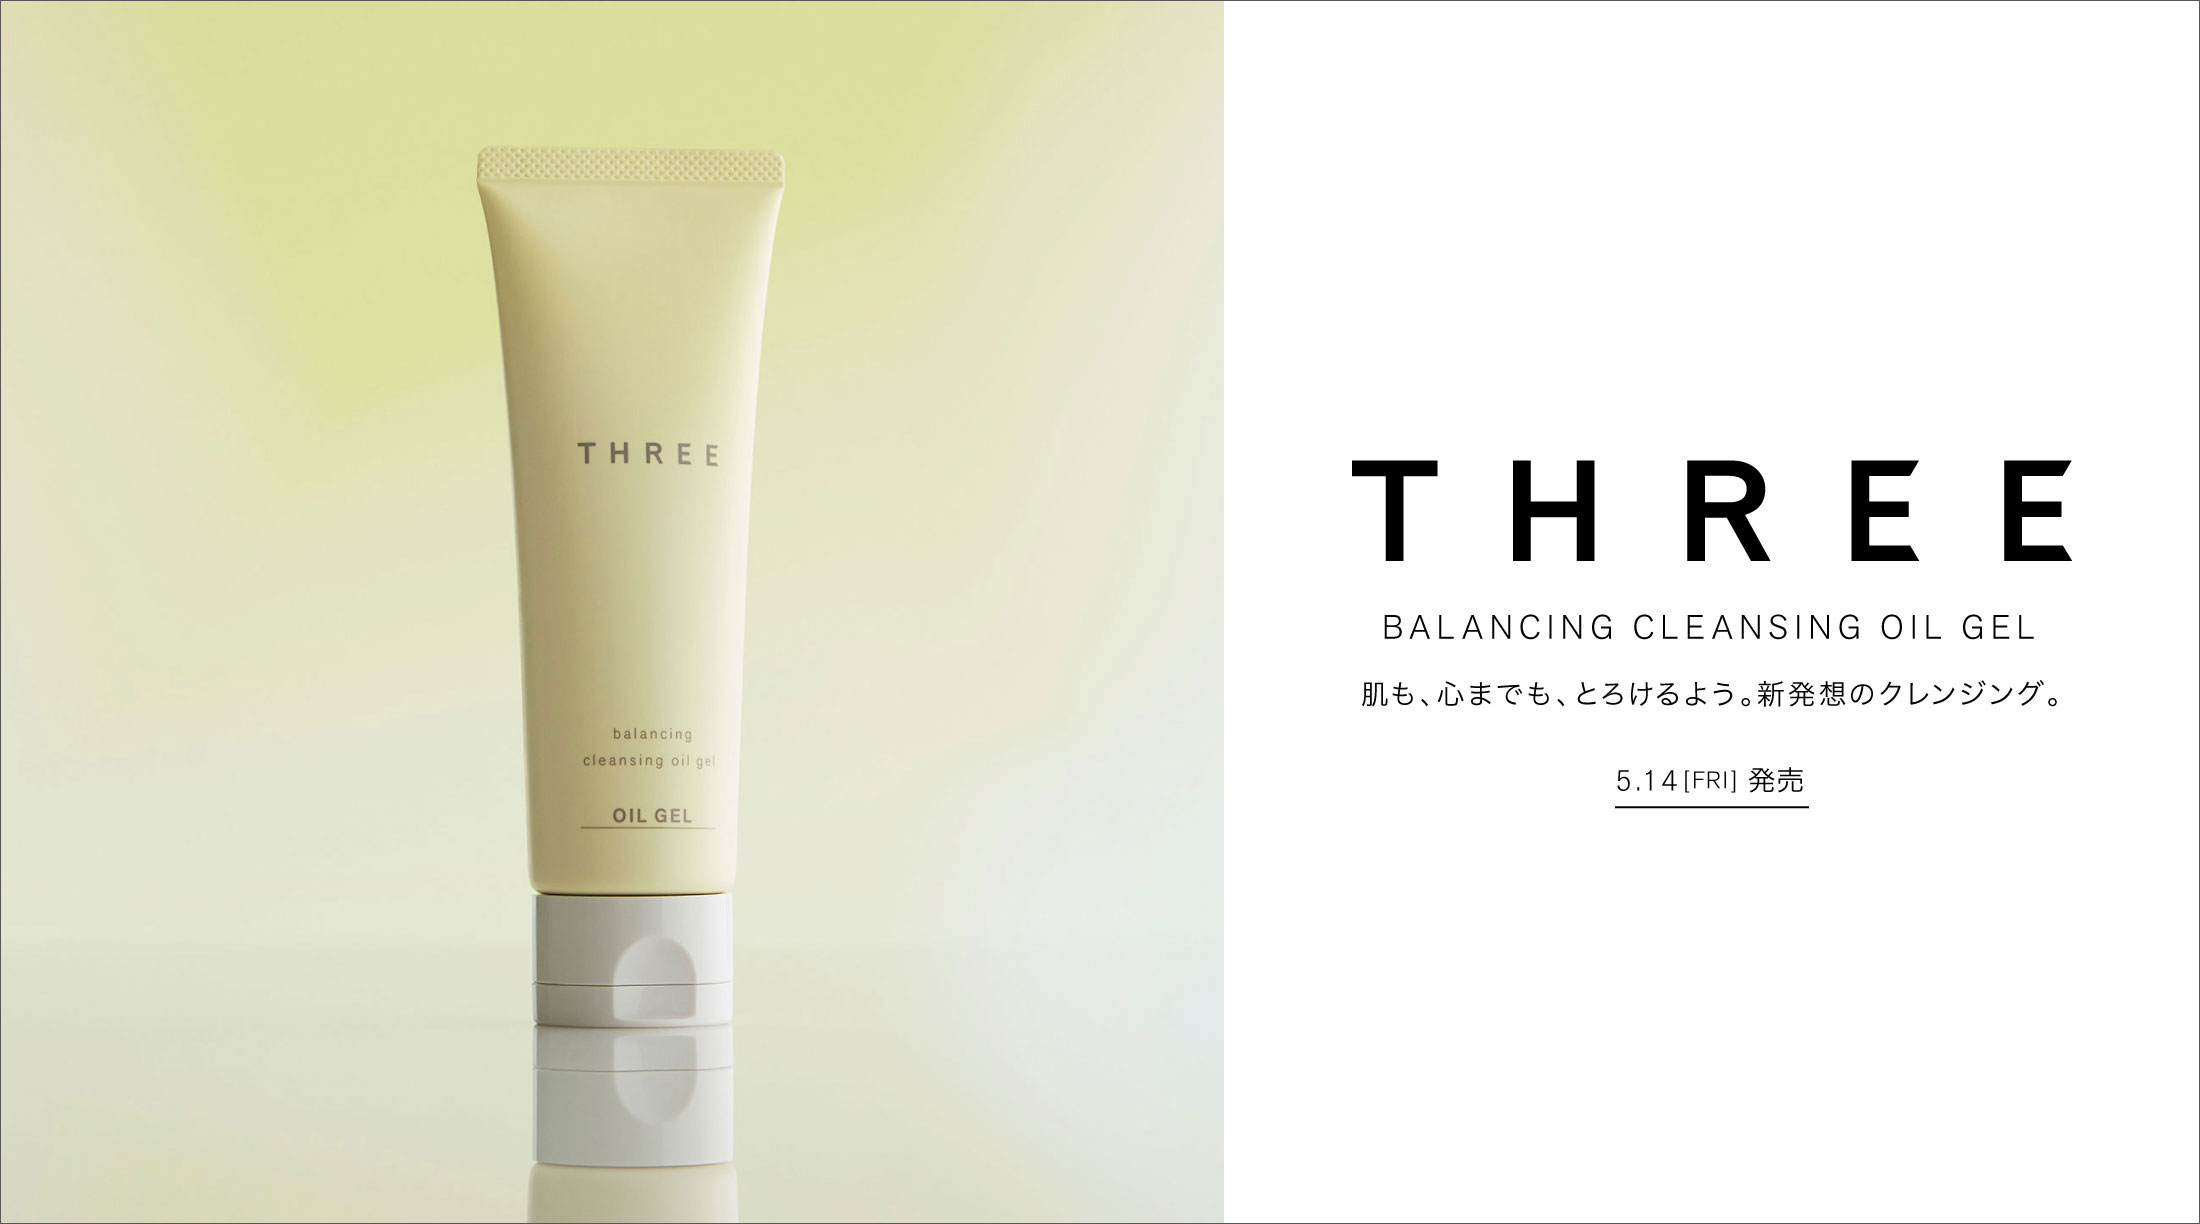 THREE BALANCING CLEANSING OIL GEL